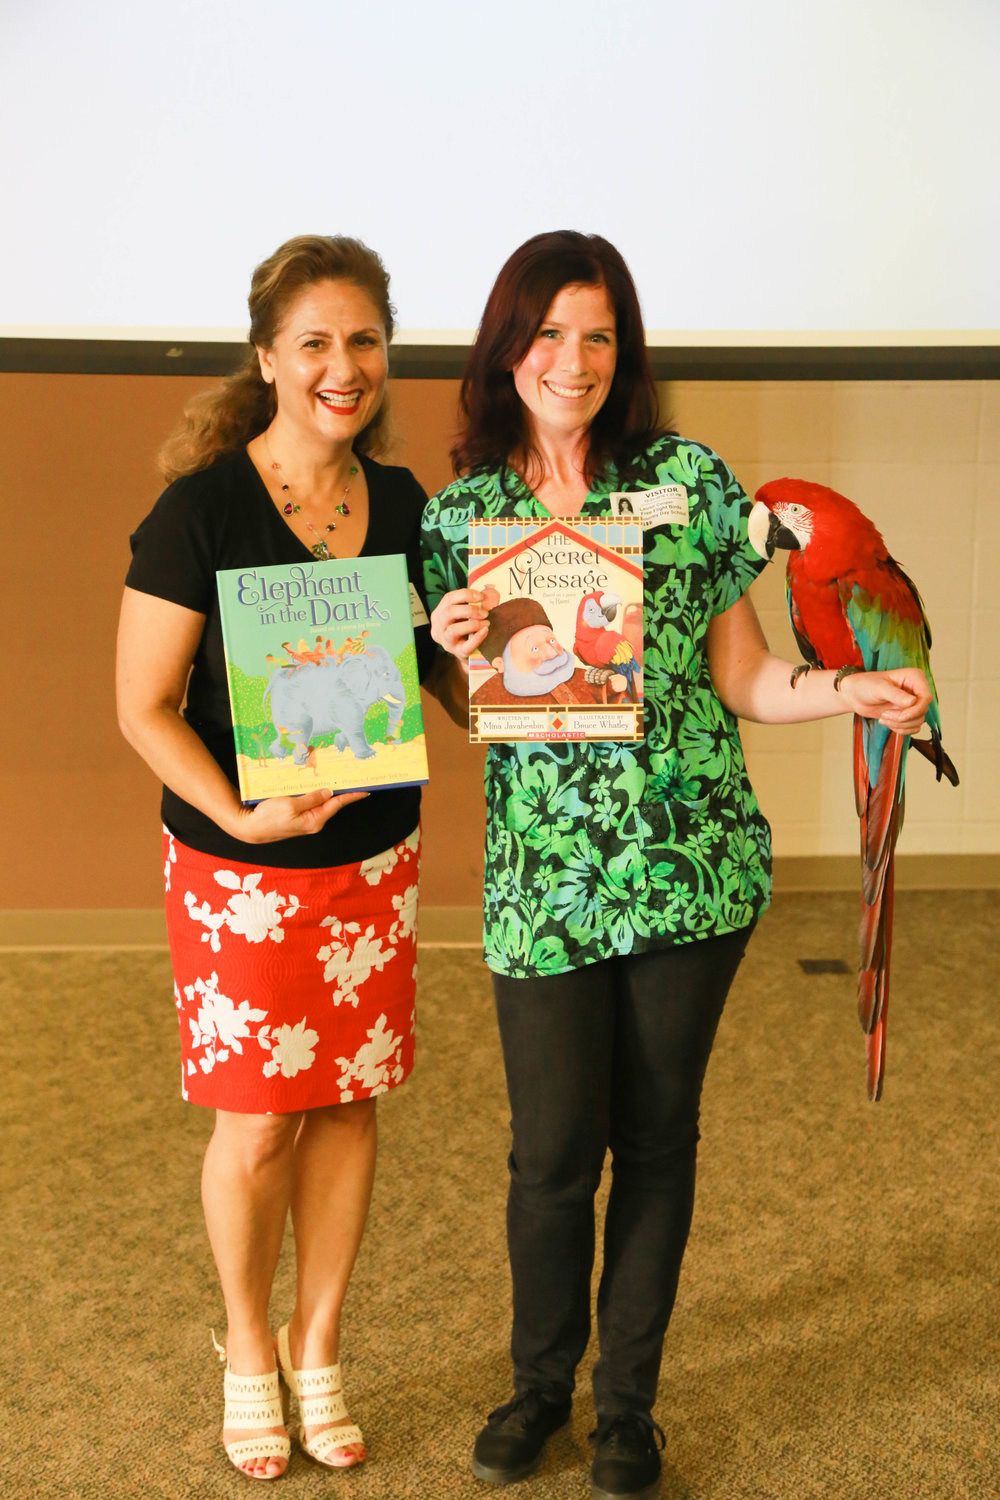 """Red,"" the Greenwinged Macaw, meets Mina Javaherbin, author of ""The Secret Message"" [Photo: Rachel Baxter, LJCDS]"